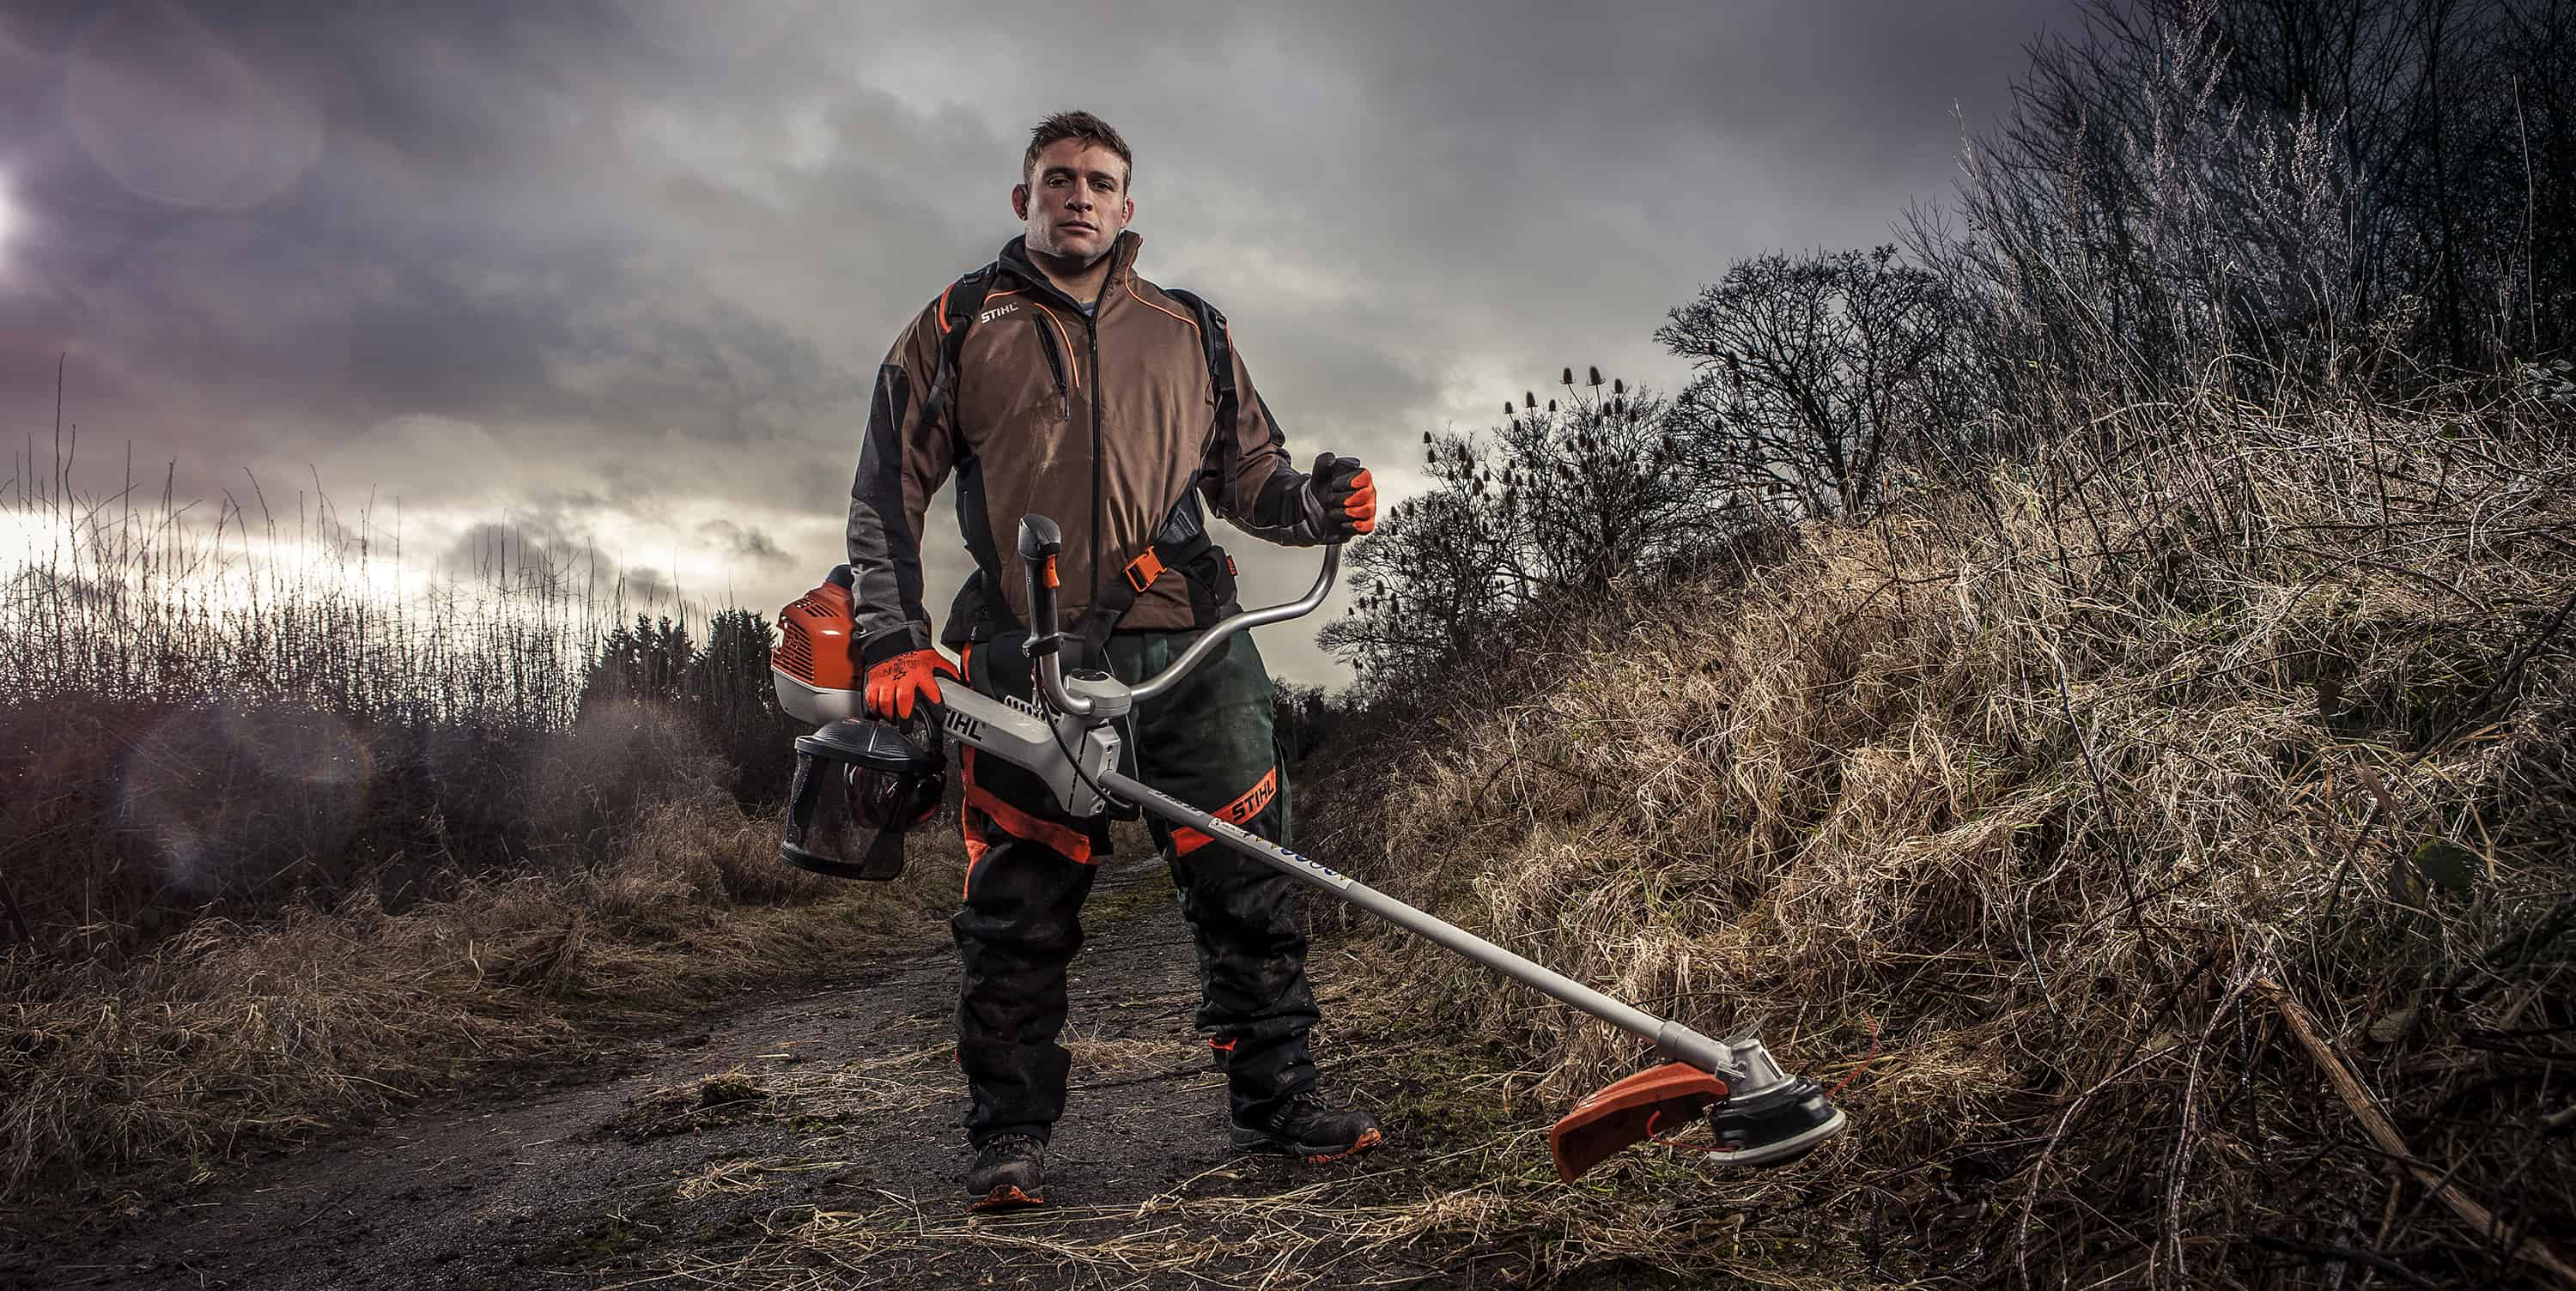 image of Tom Youngs with Stihl Brushcutter location photography by ross vincent